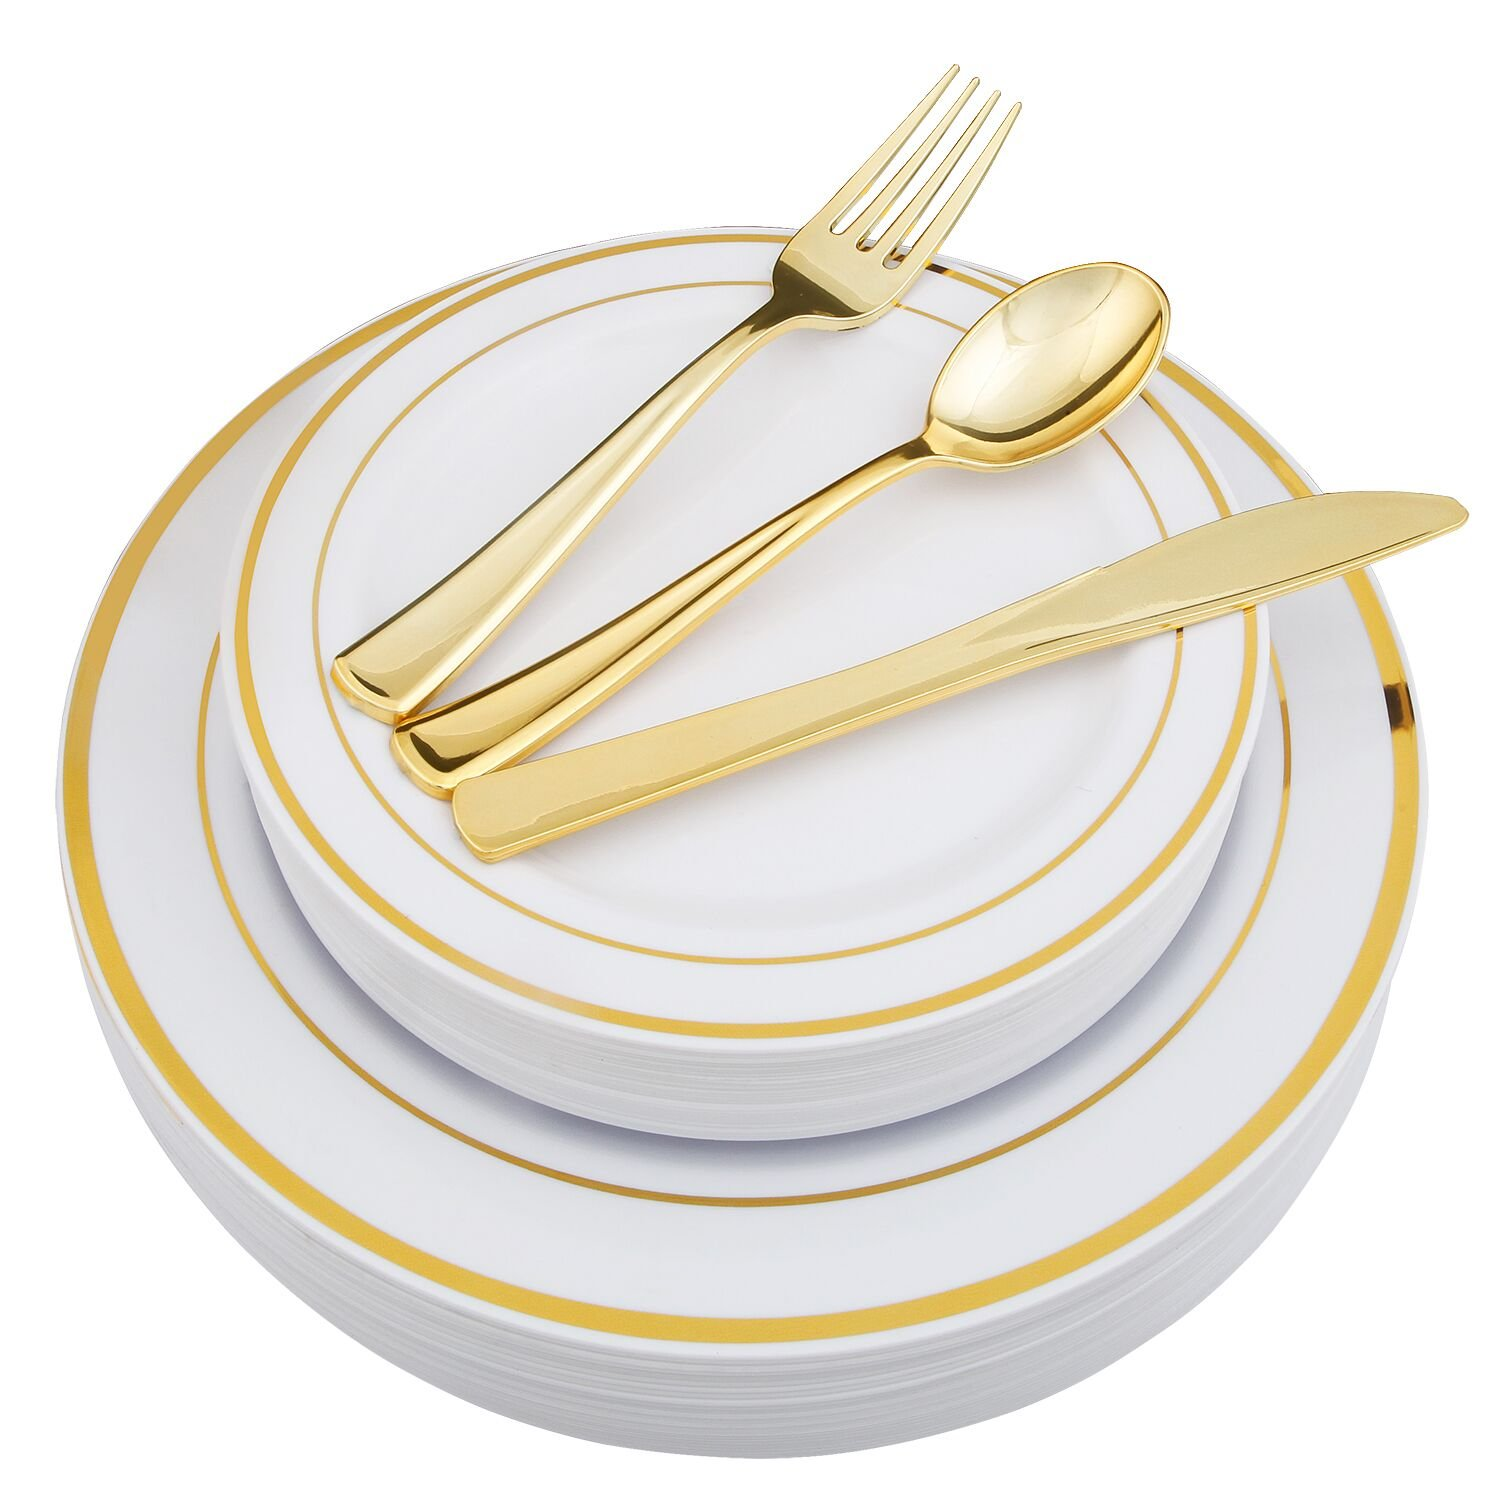 WDF-125 Piece Gold Plastic Silverware Set&Disposable Plastic Plates- Premium Heavyweight Plastic Place Setting include 25 Dinner Plates, 25 Salad Plates, 25 Forks, 25 Knives, 25 Spoons (Gold)